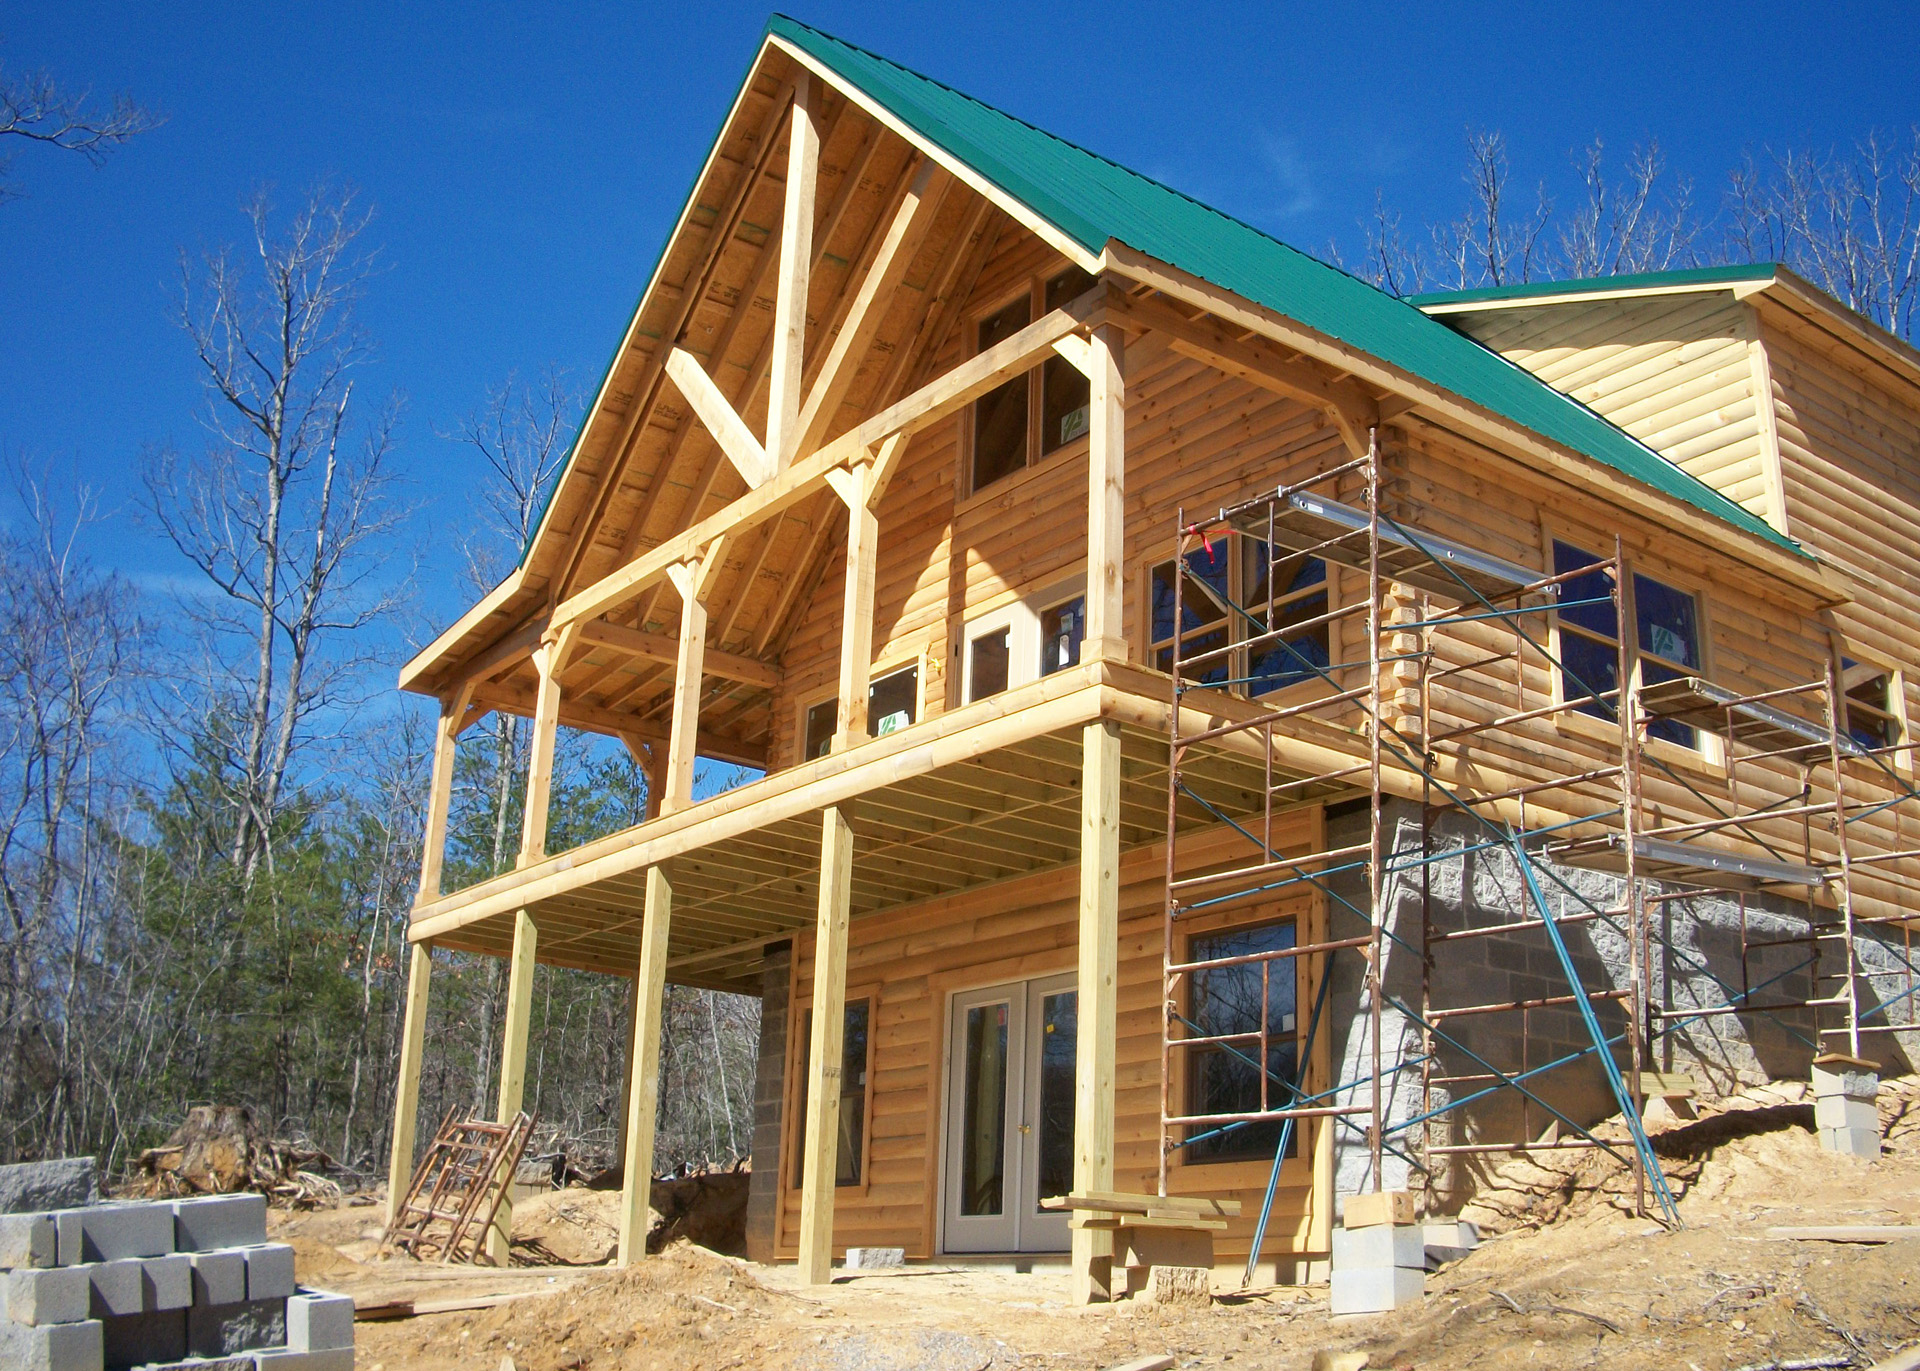 Example photo - build a house